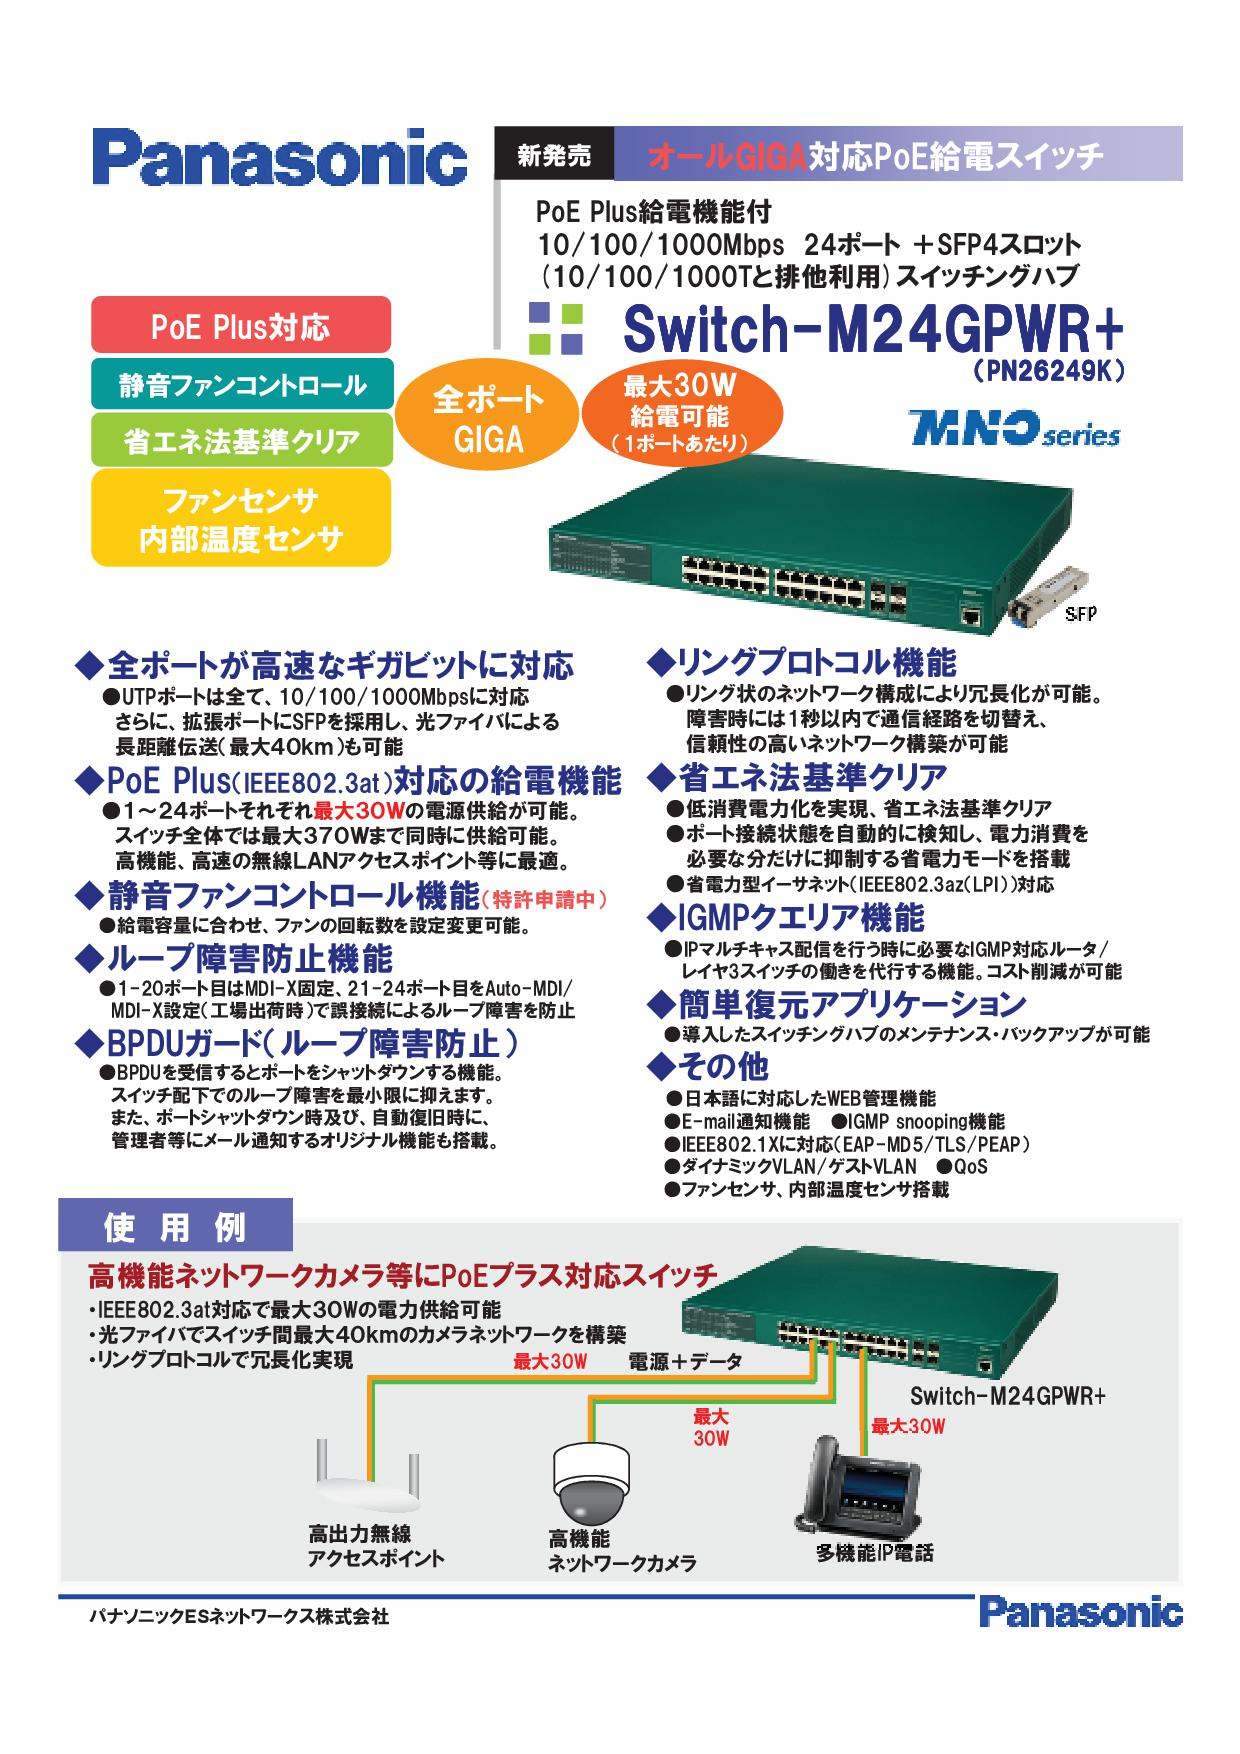 item_news_PANASONIC_Switch-M24GPWR+20141107-001